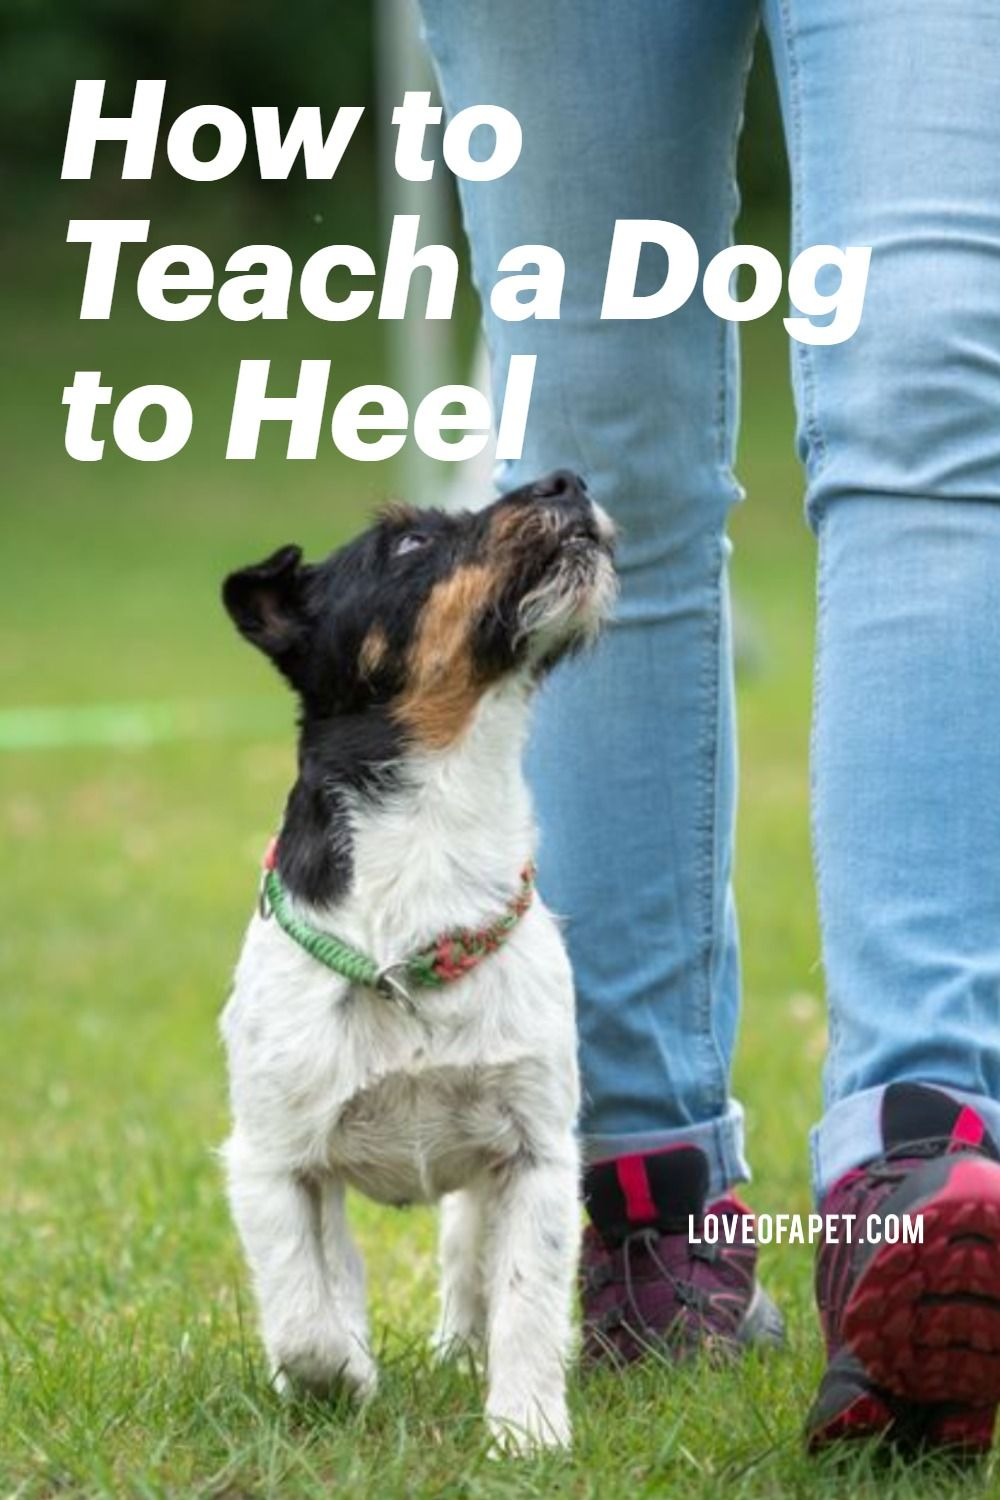 How to teach a dog to heel perfectly dogs training your